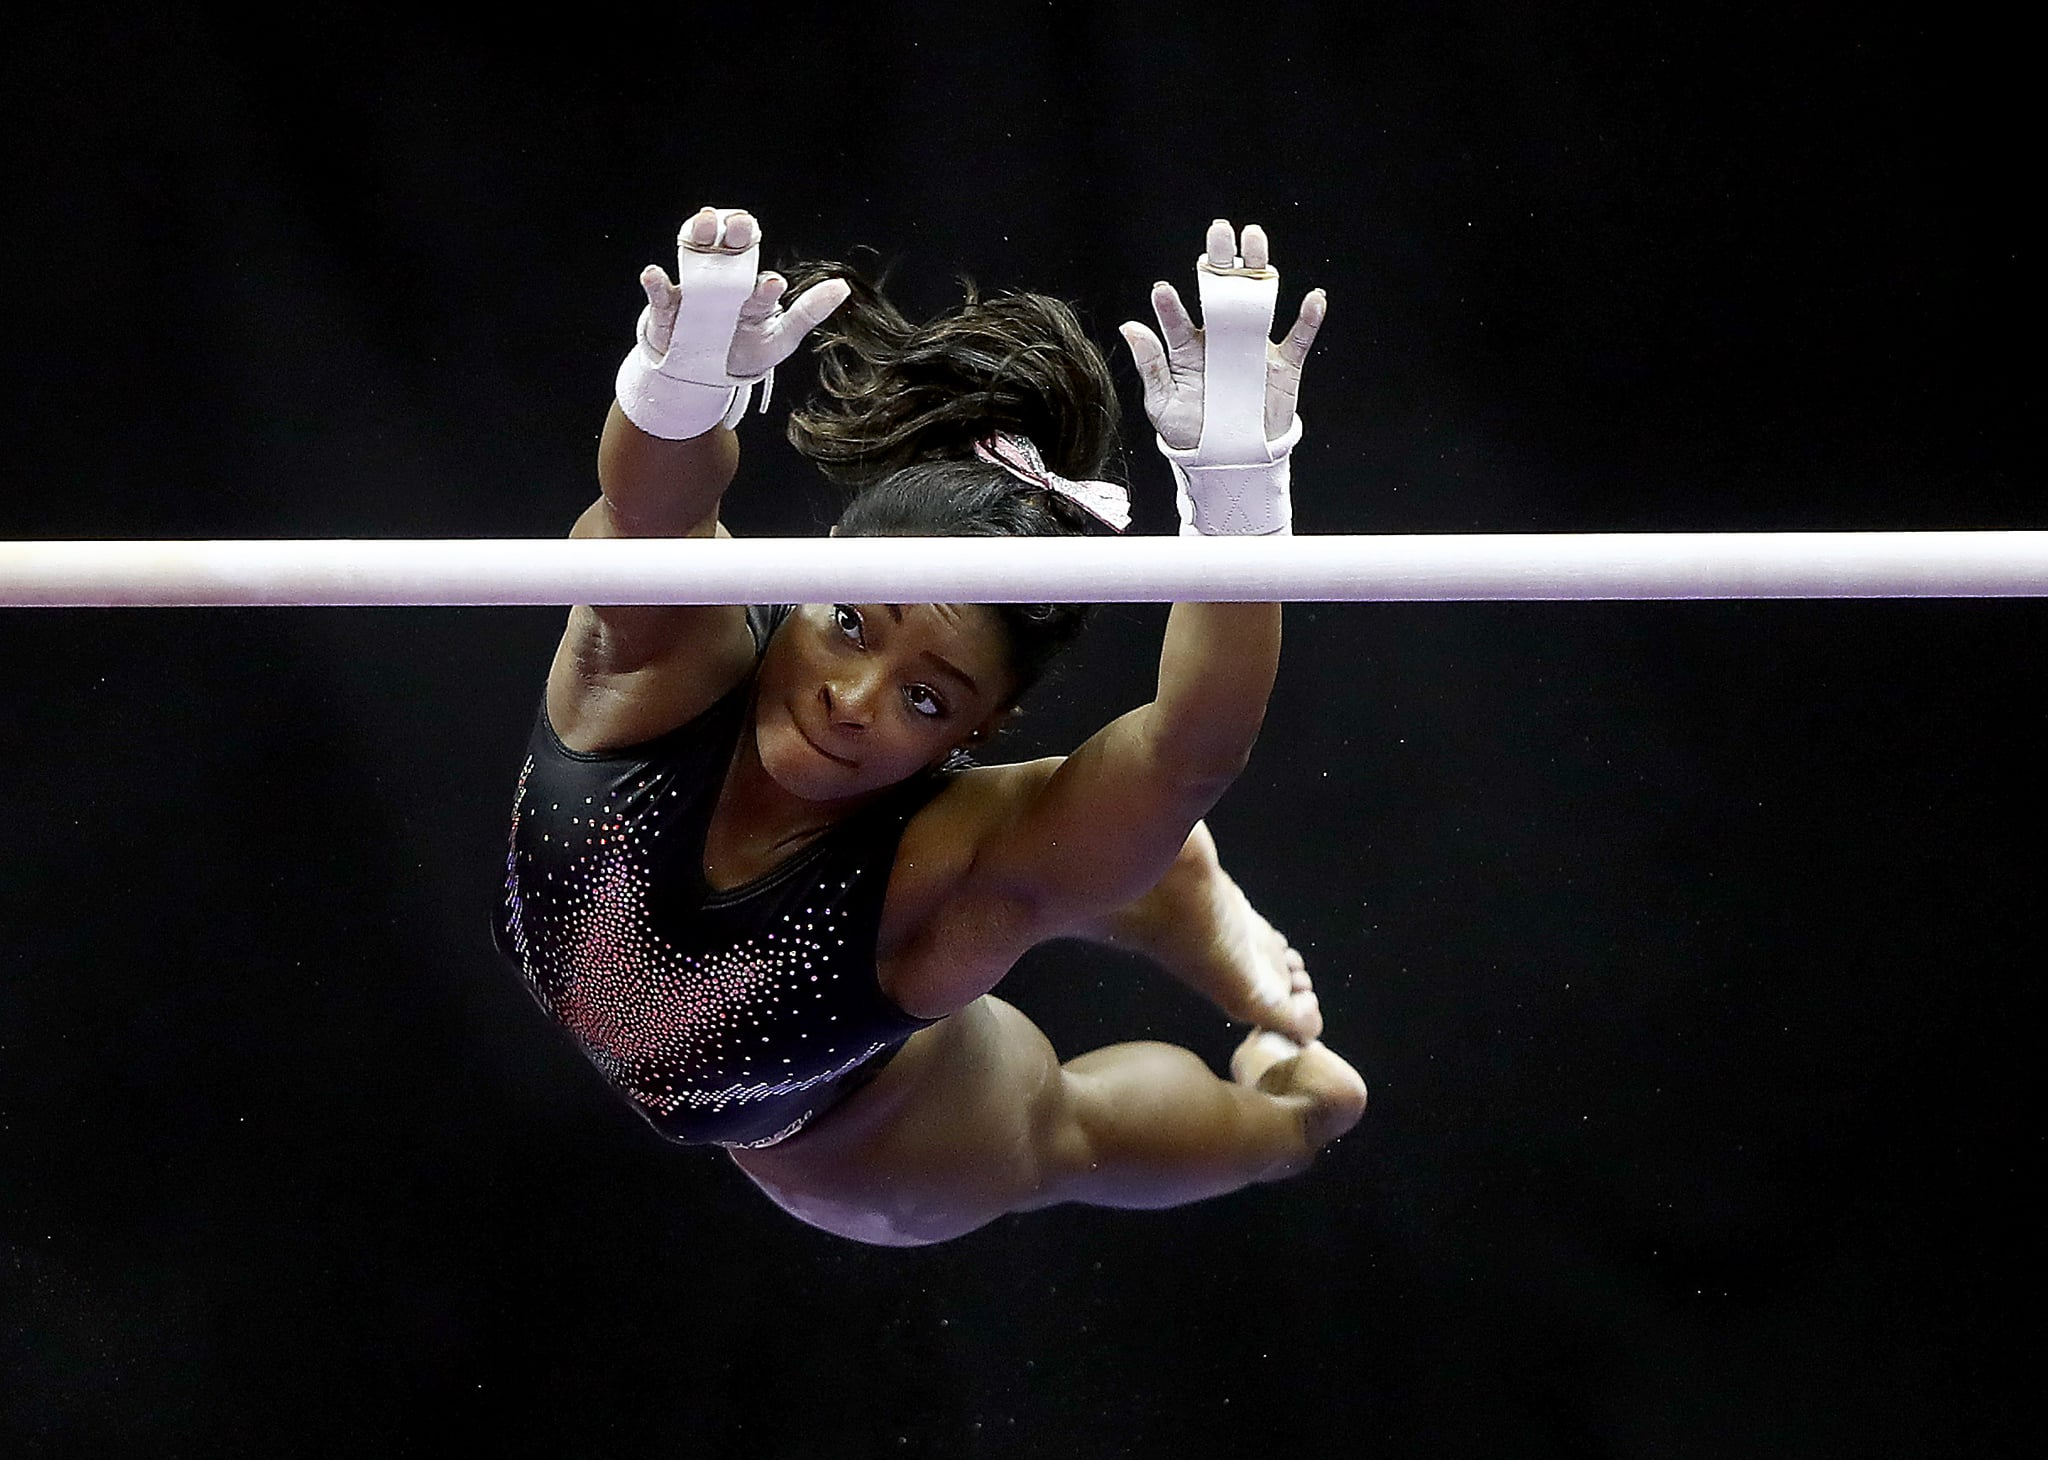 KANSAS CITY, MISSOURI - AUGUST 11:  Simone Biles warms up on the uneven bars prior to the Women's Senior competition of the 2019 U.S. Gymnastics Championships at the Sprint Center on August 11, 2019 in Kansas City, Missouri. (Photo by Jamie Squire/Getty Images)